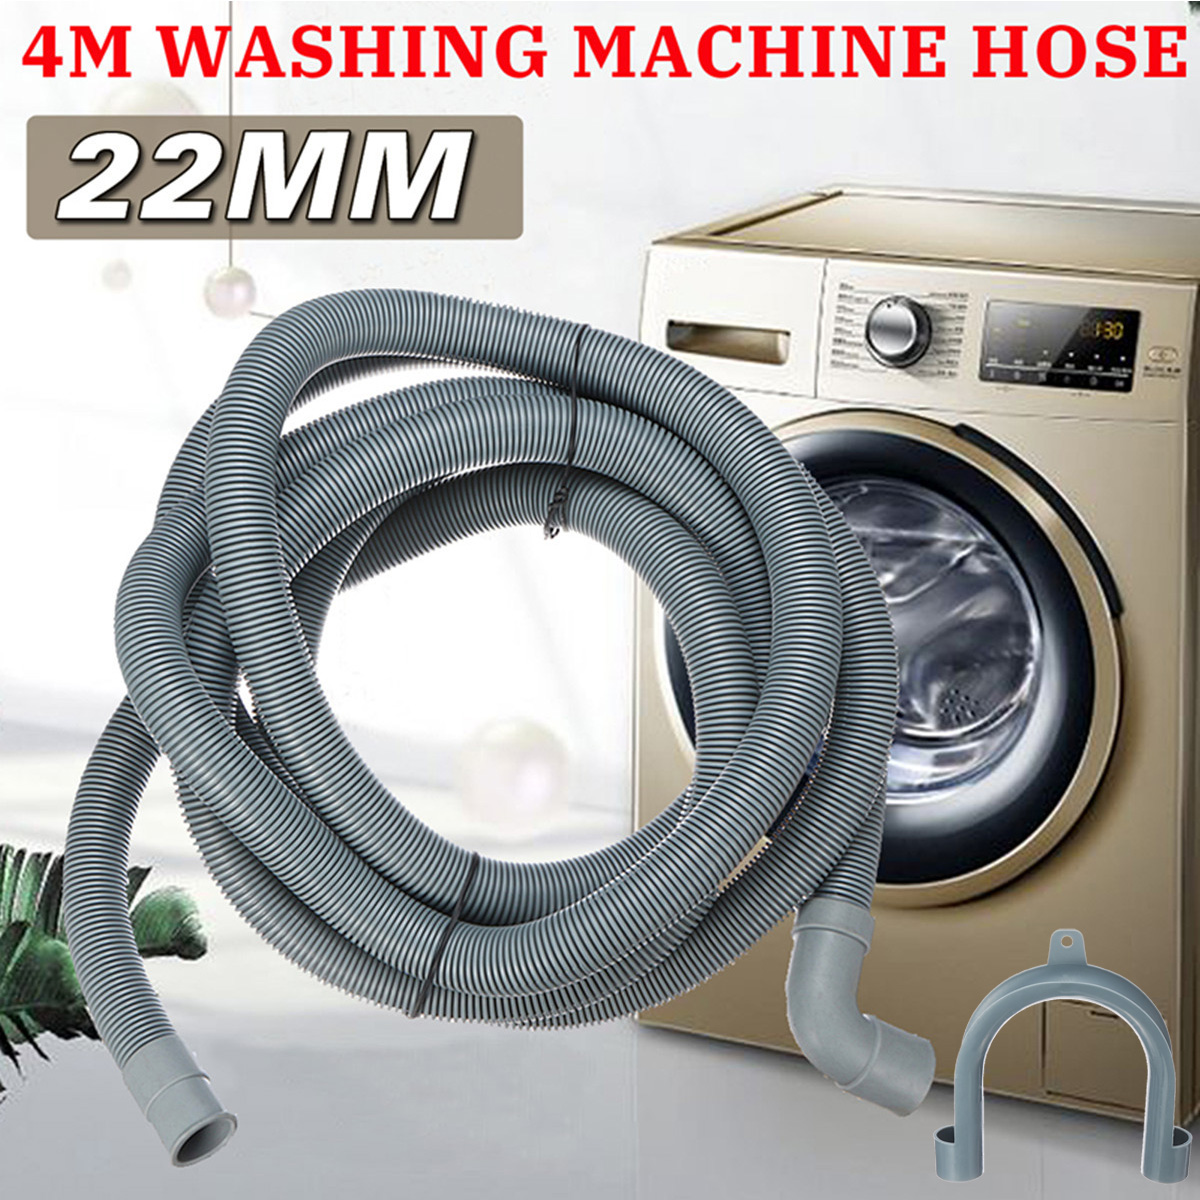 все цены на 4M Wash Machine Dishwasher Drain Hose Outlet Water Pipe Flexible Extension 22mm With Bracket онлайн